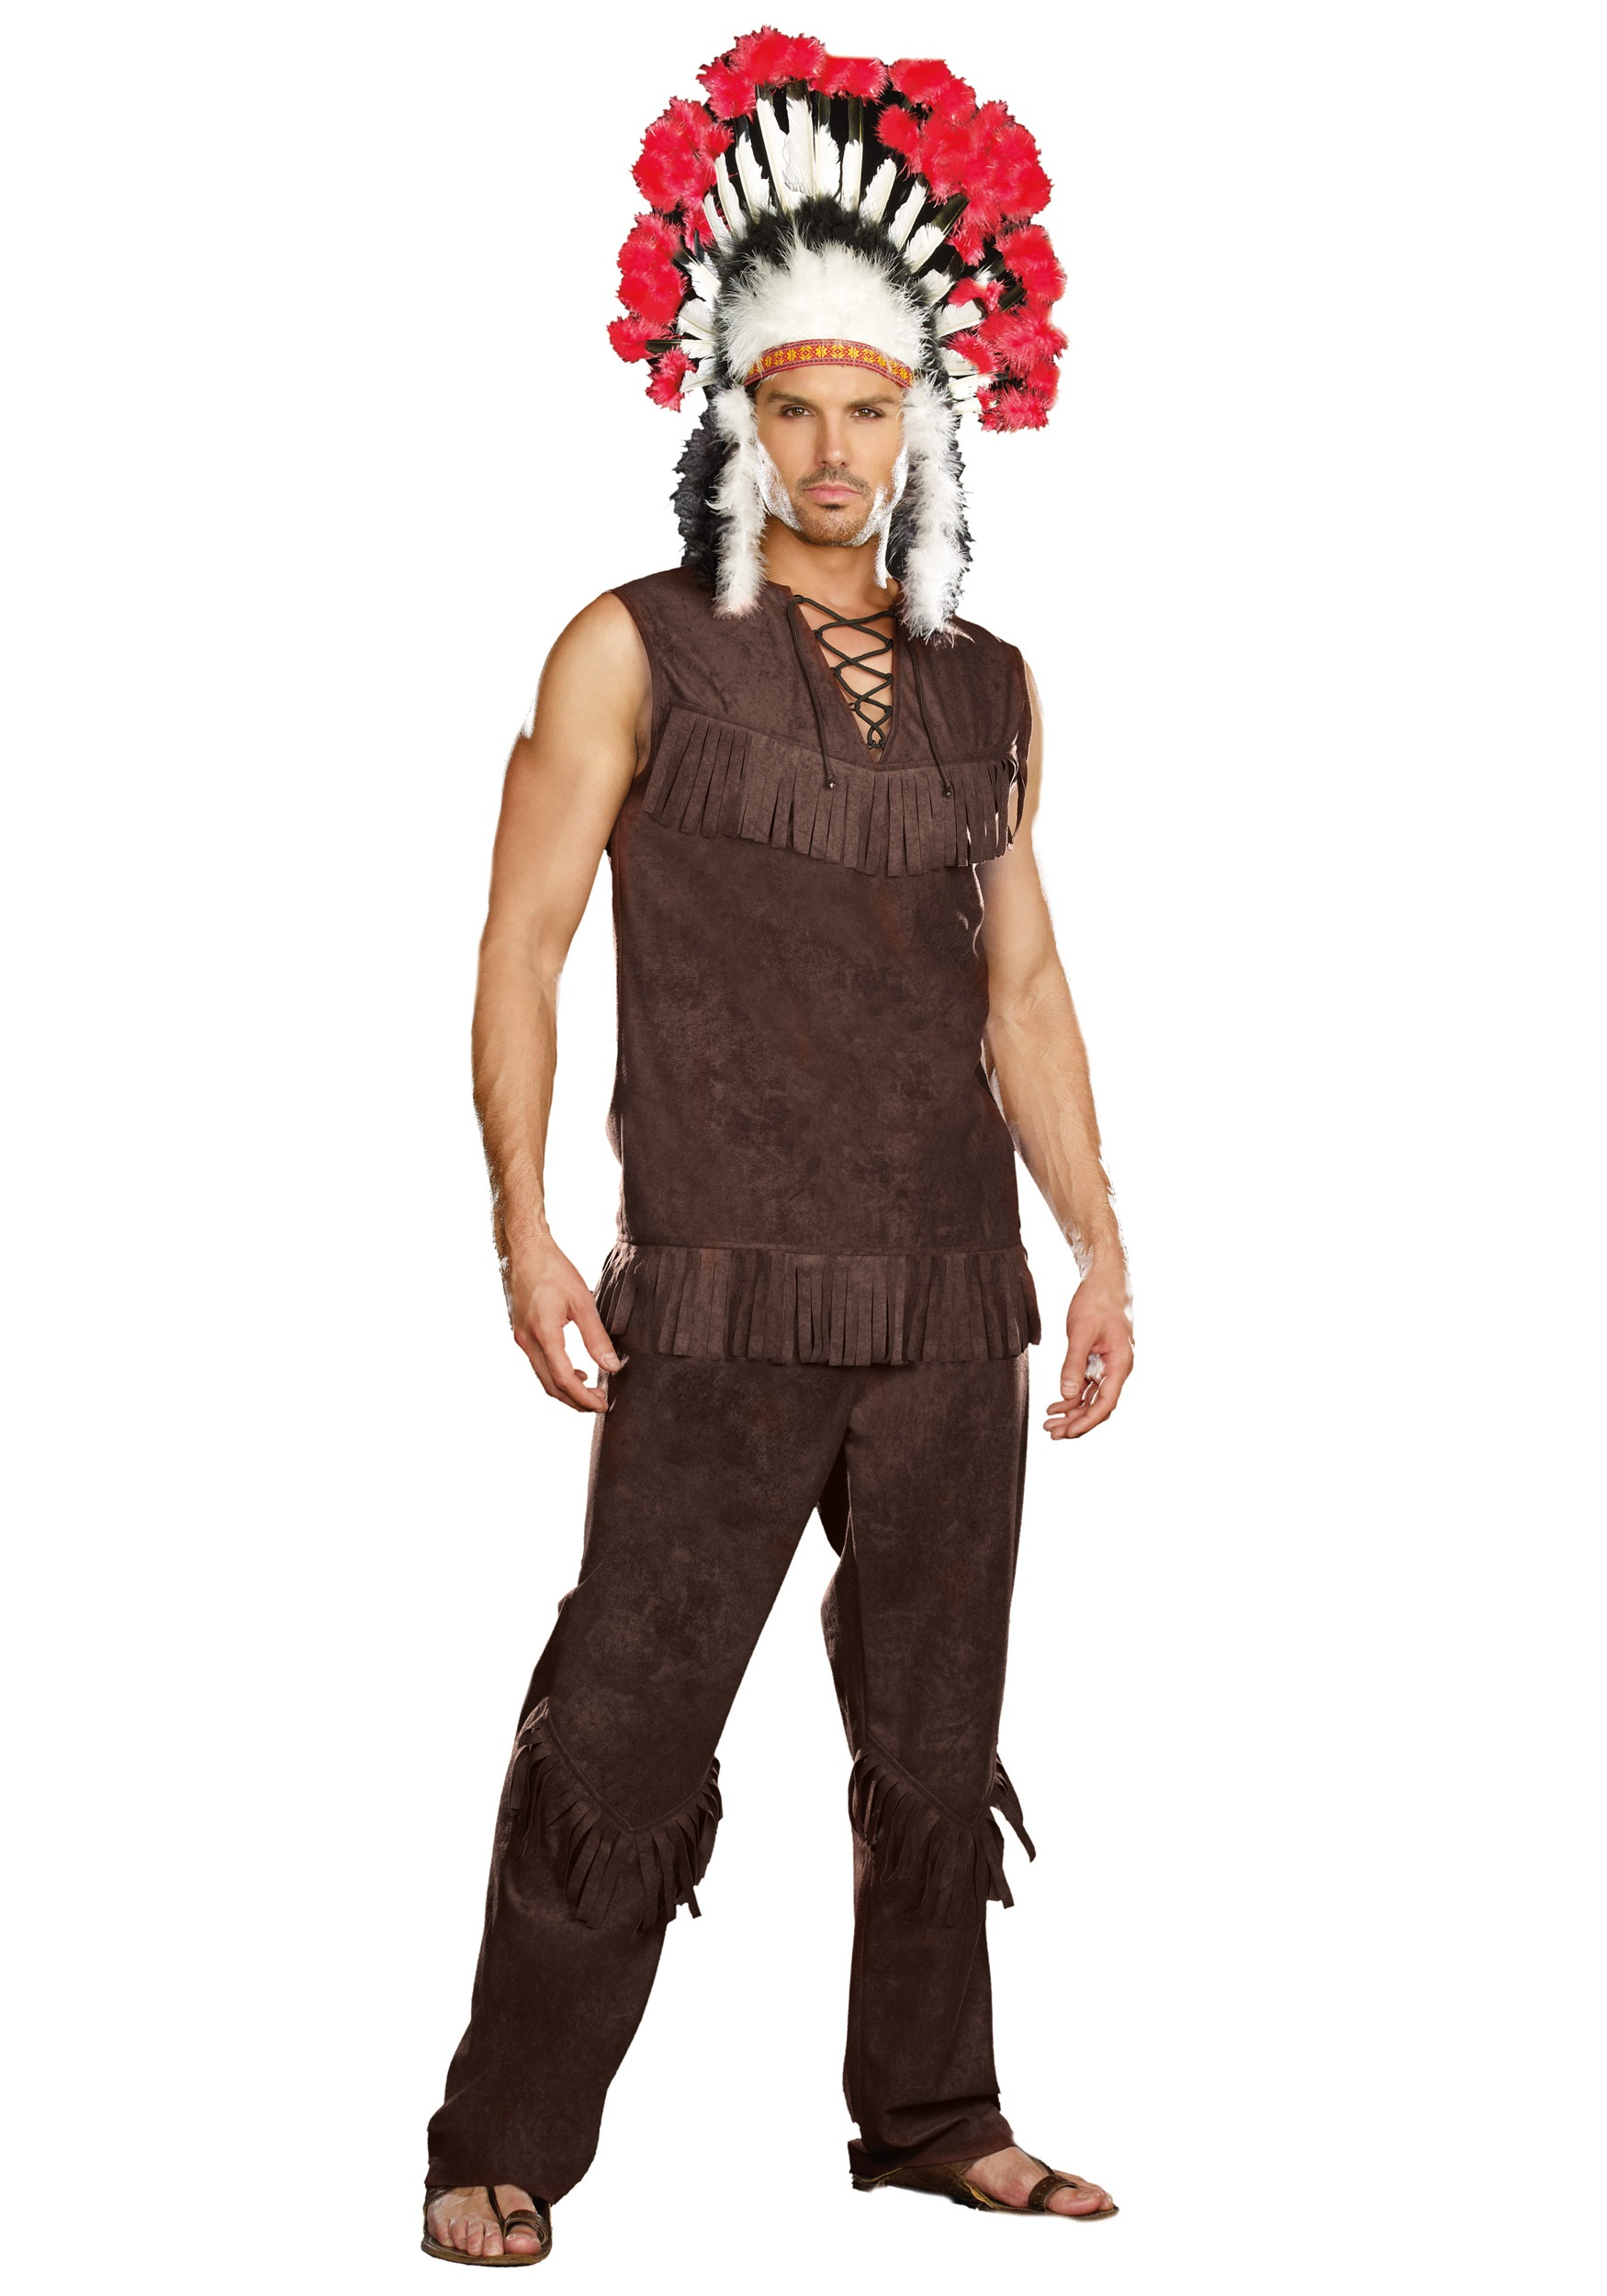 Native American Costumes - HalloweenCostumes com